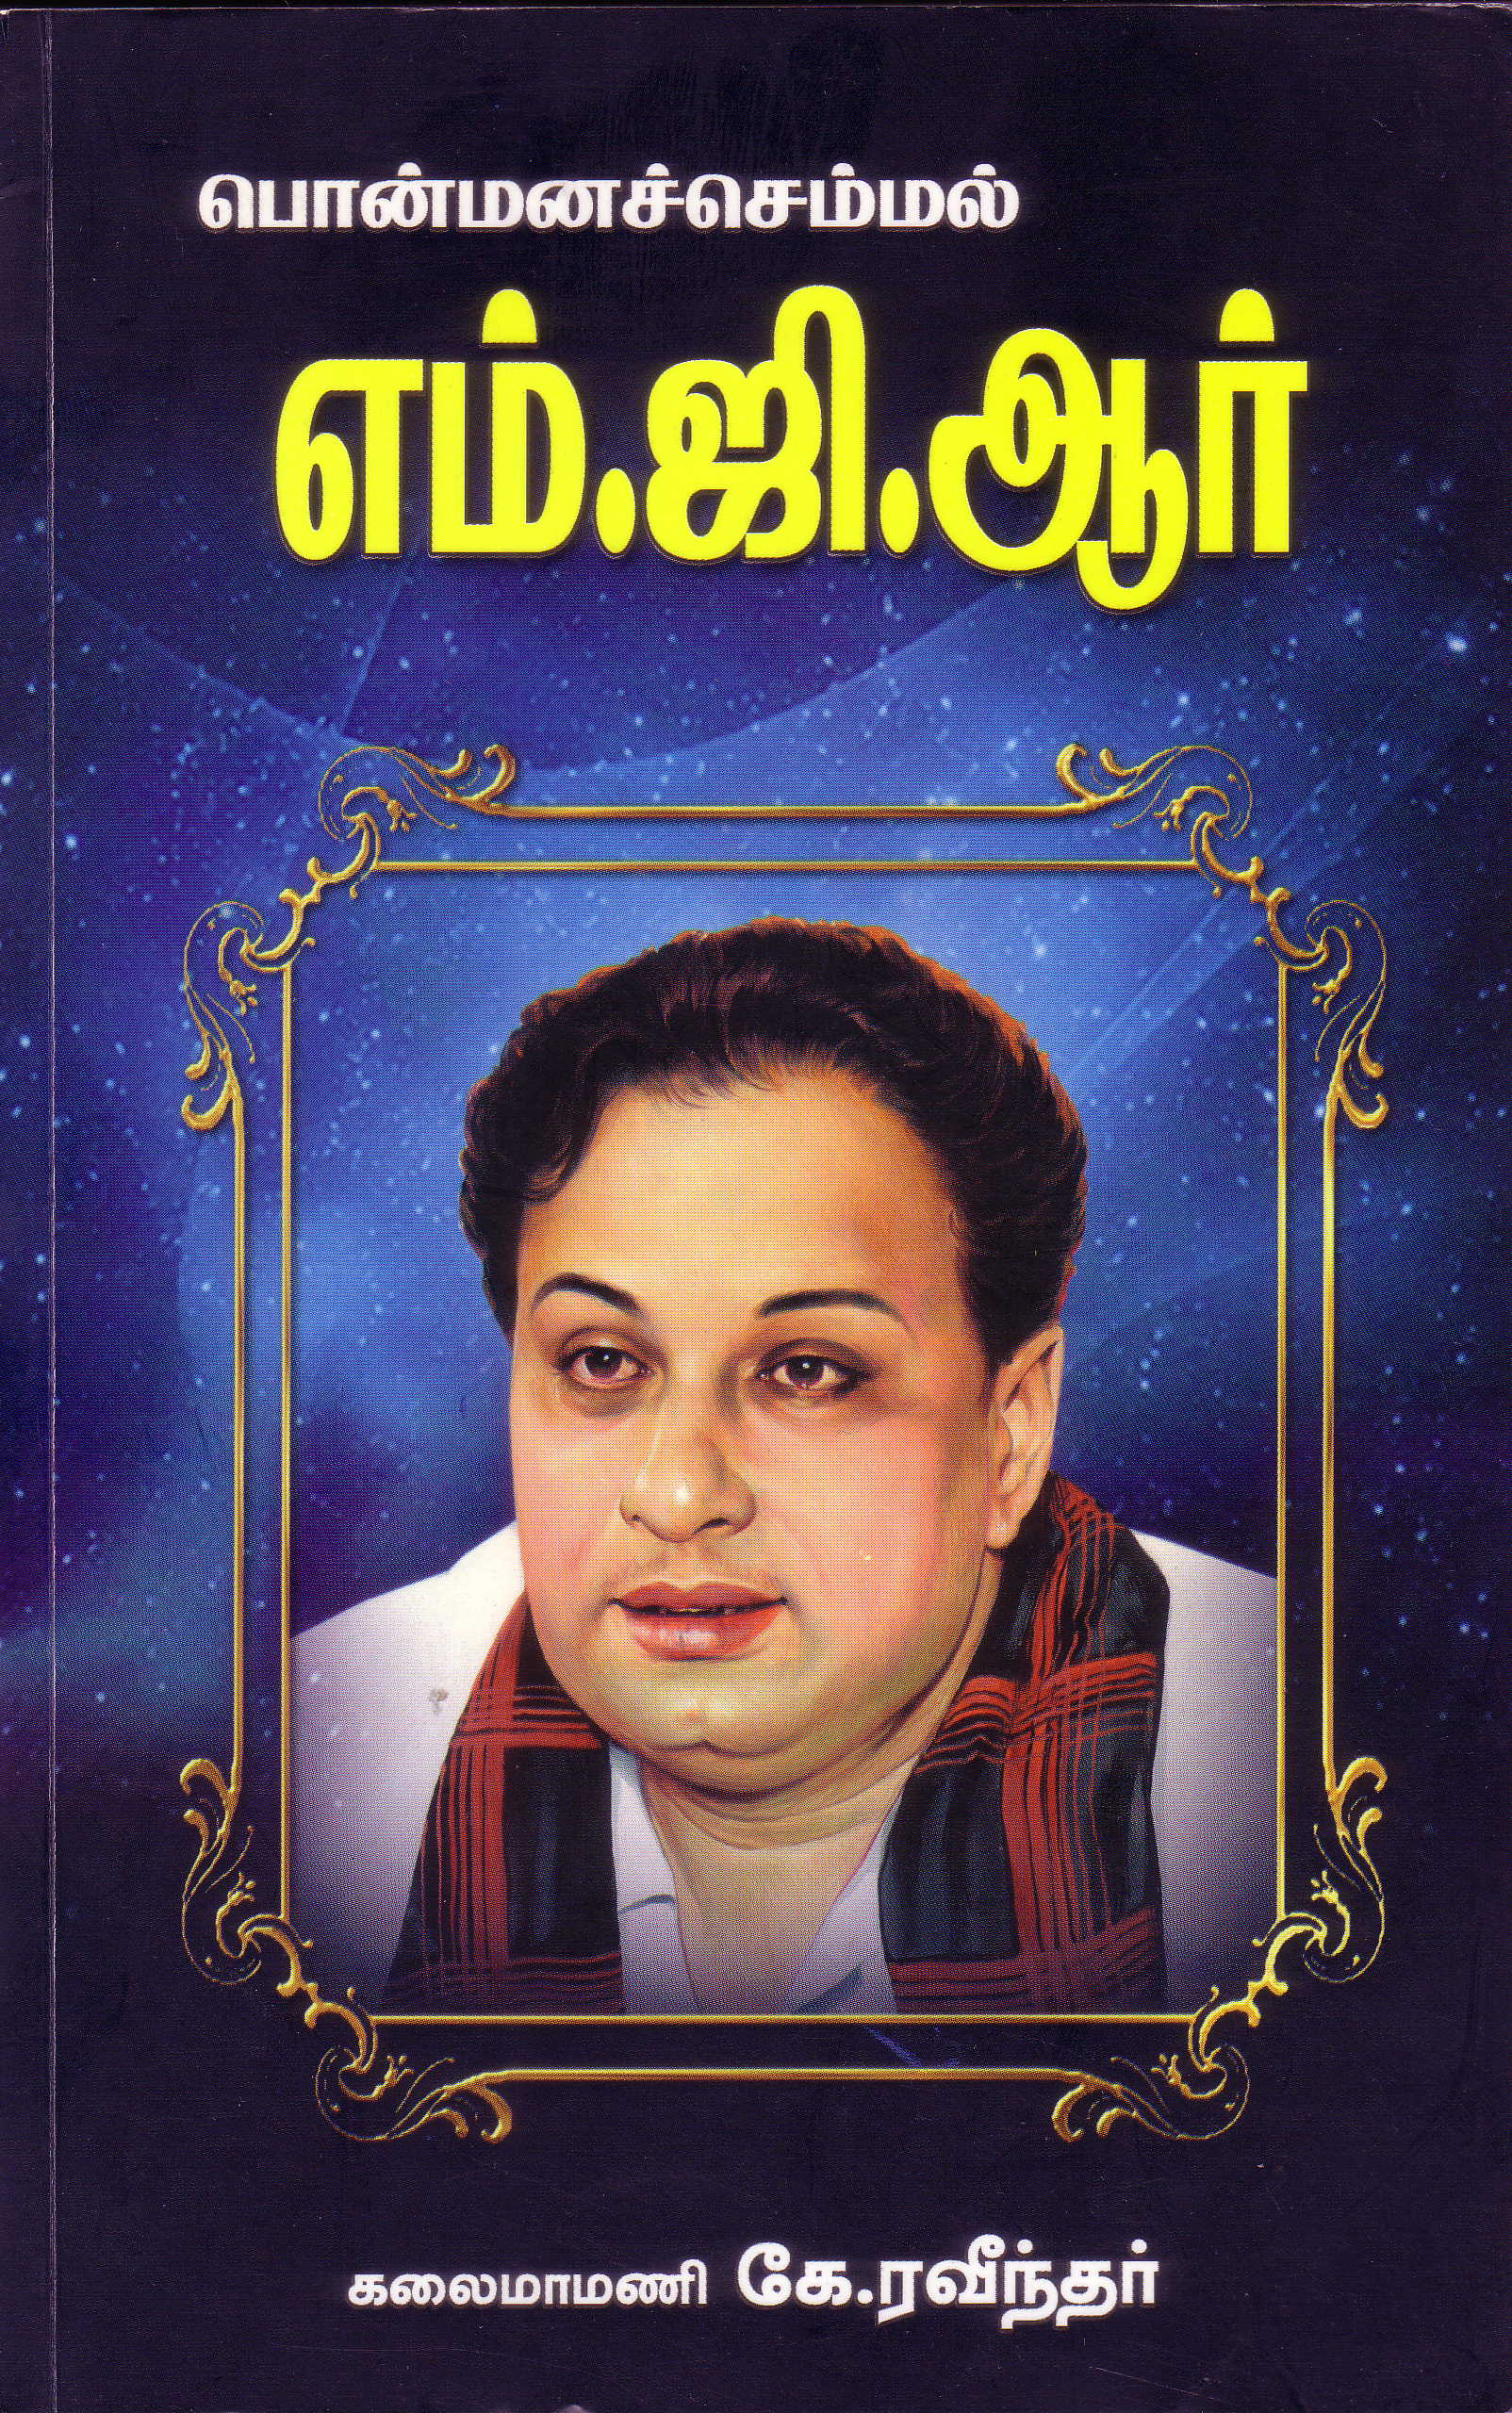 K Ravindar biography of MGR 2009